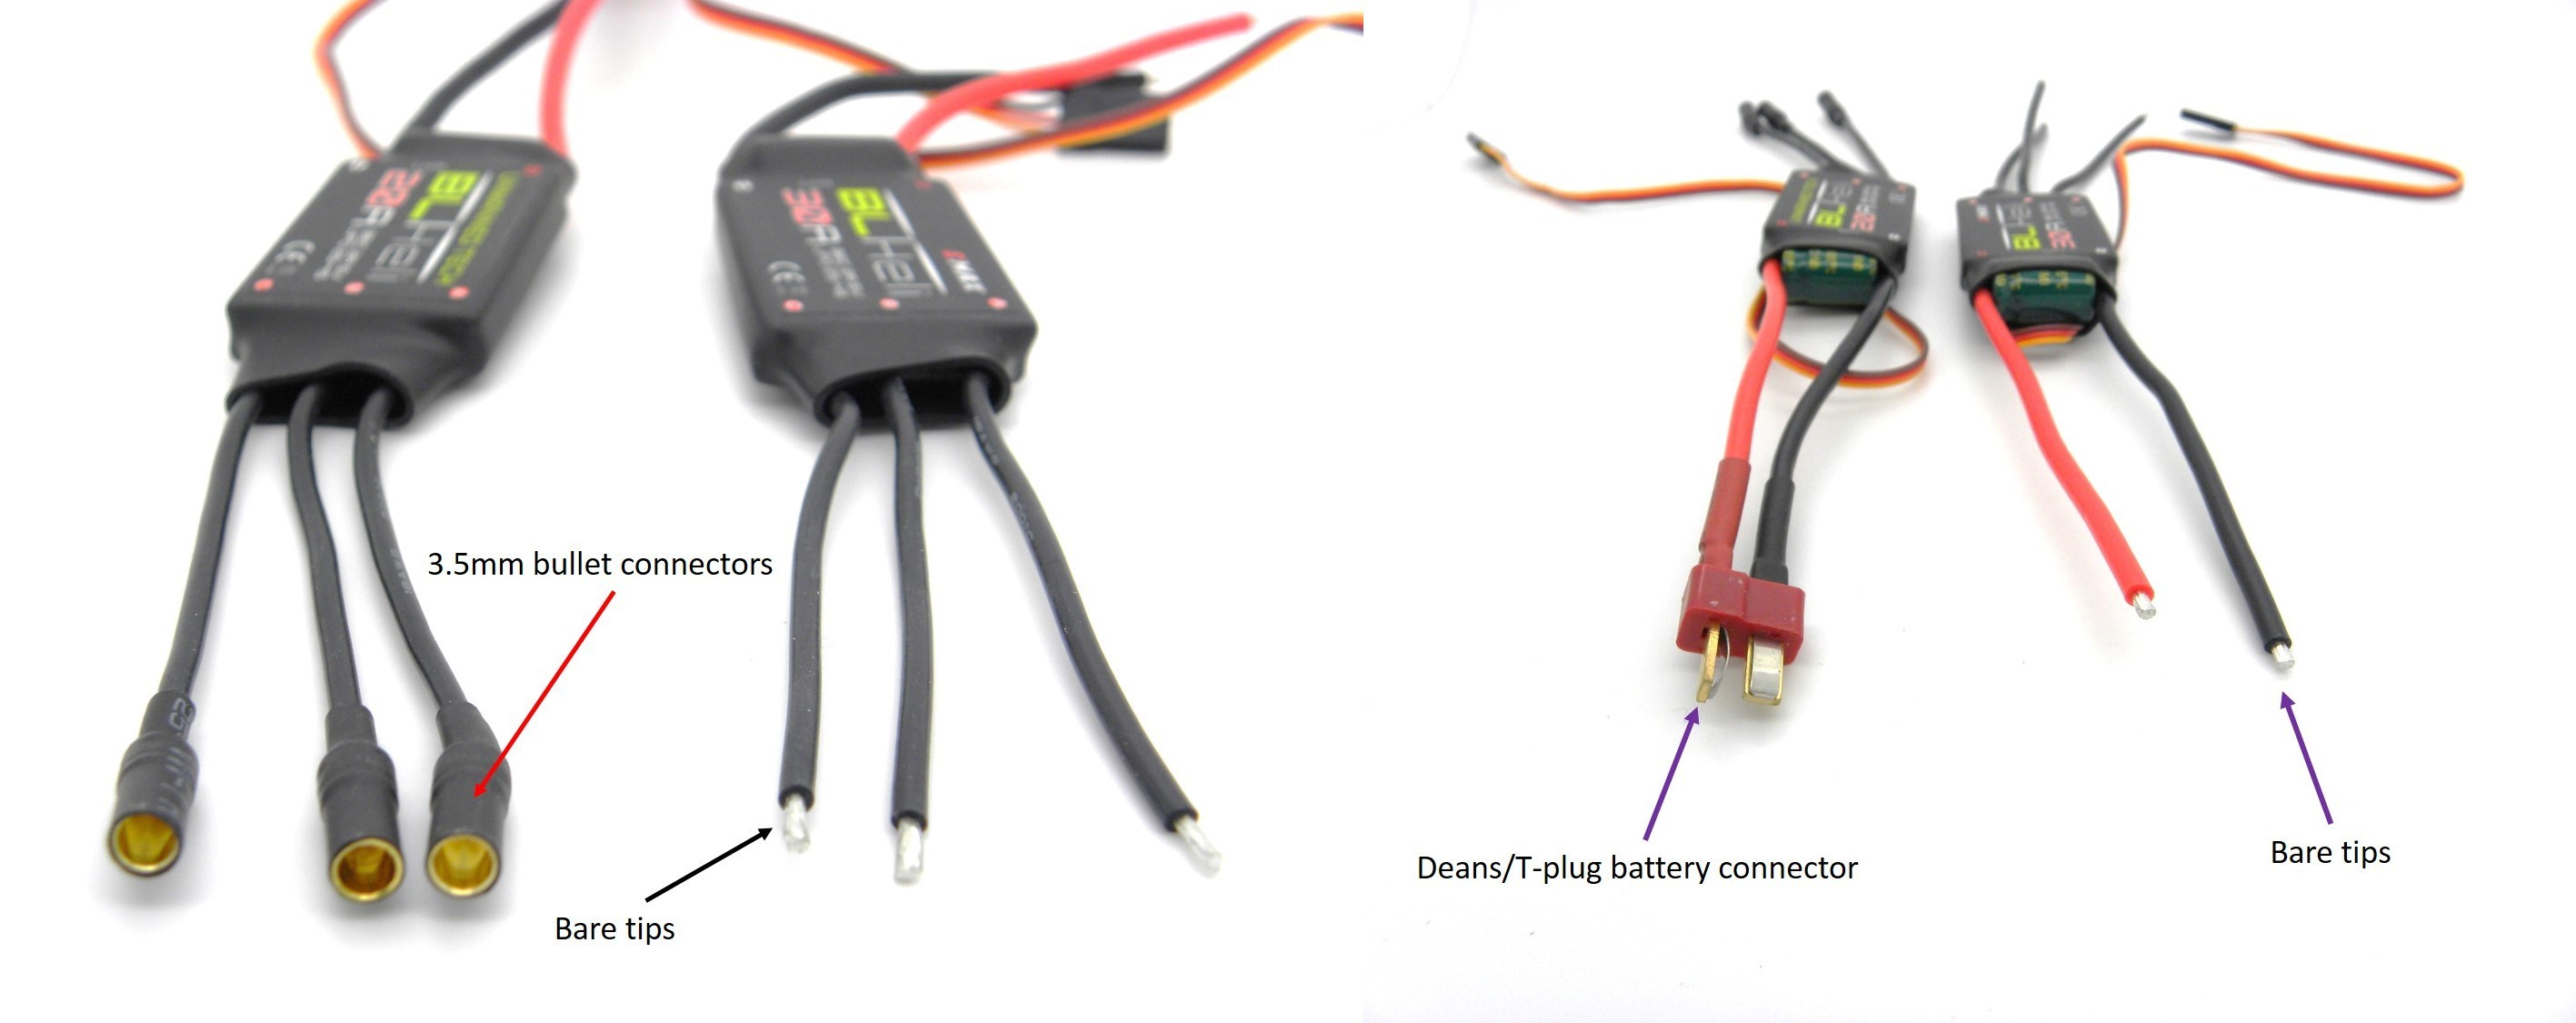 What To Consider When Buying A Esc For Your Multirotor Guides Well Brushless Motor Controller As Electric Wiring Diagram Bullet Connectors On Esc2834x1125 204 Kb